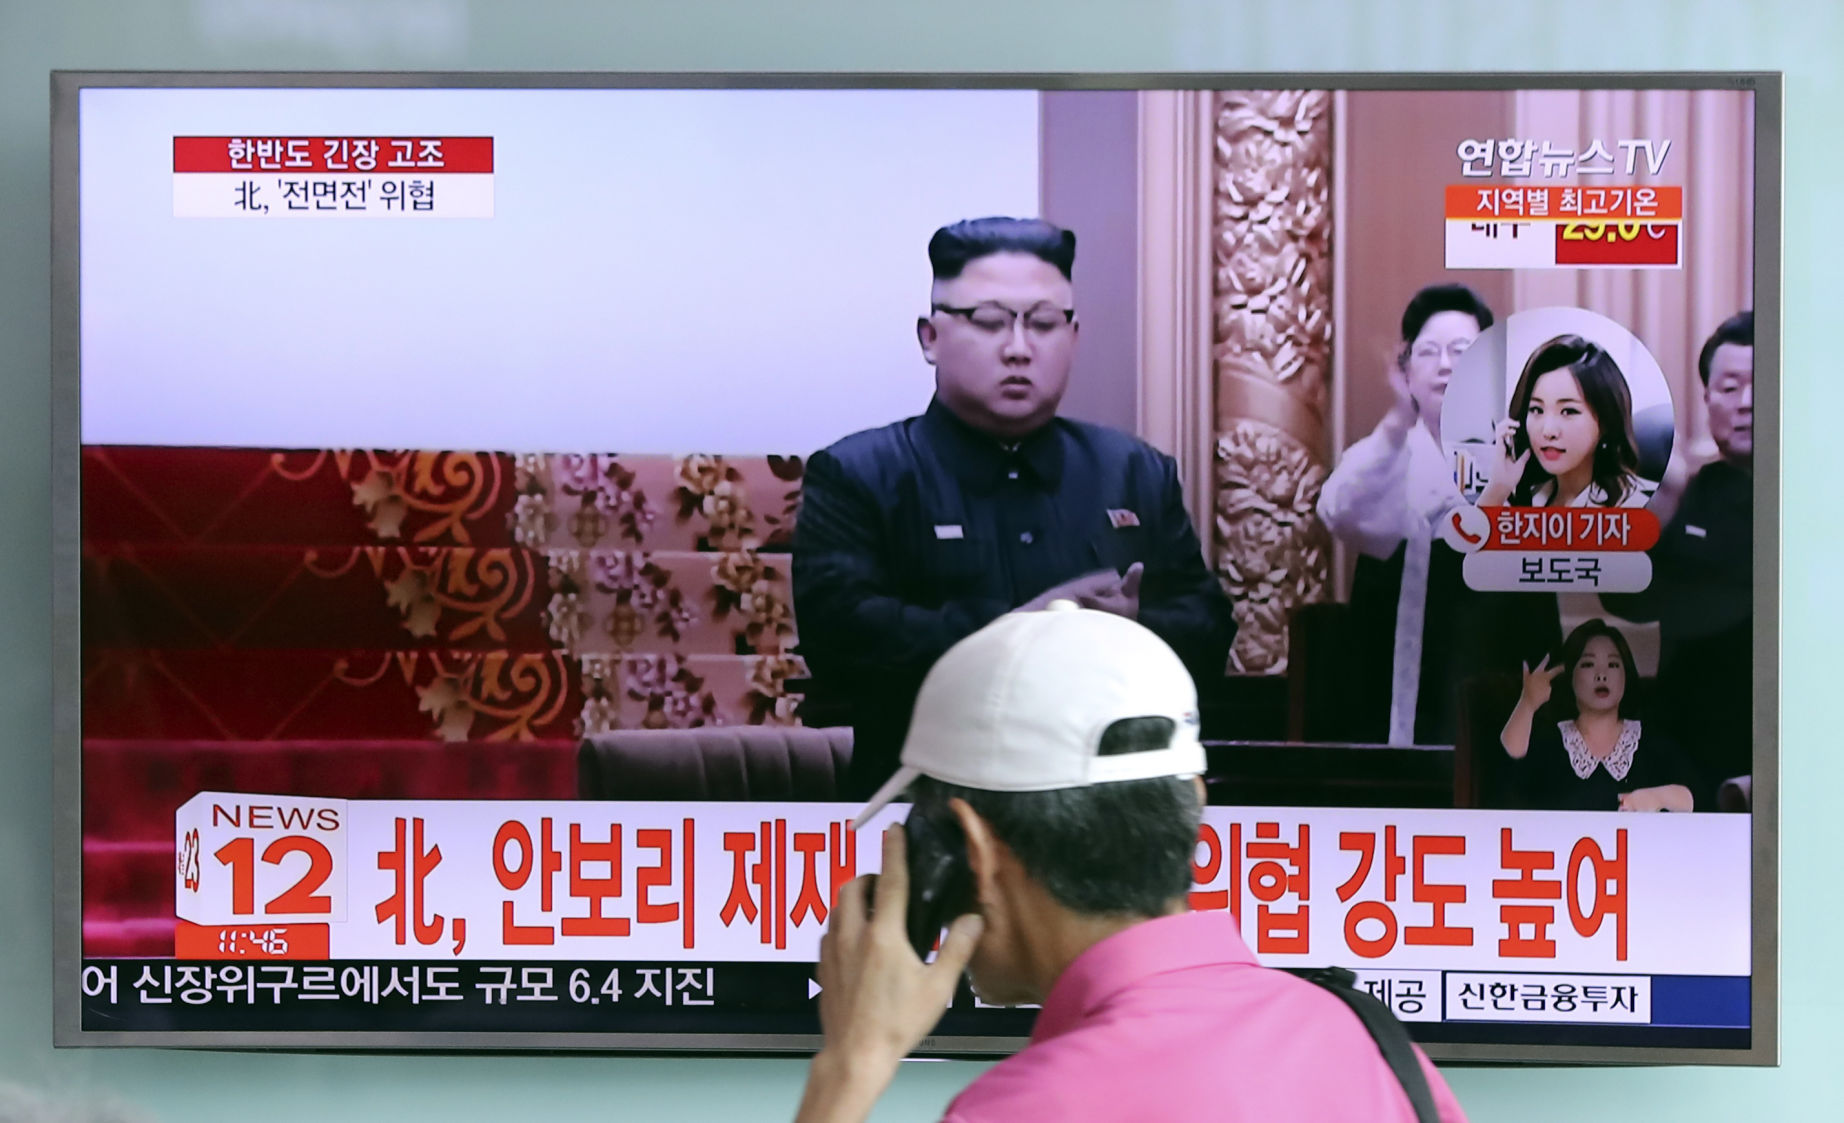 Kim has praised a plan for 'enveloping fire at Guam'